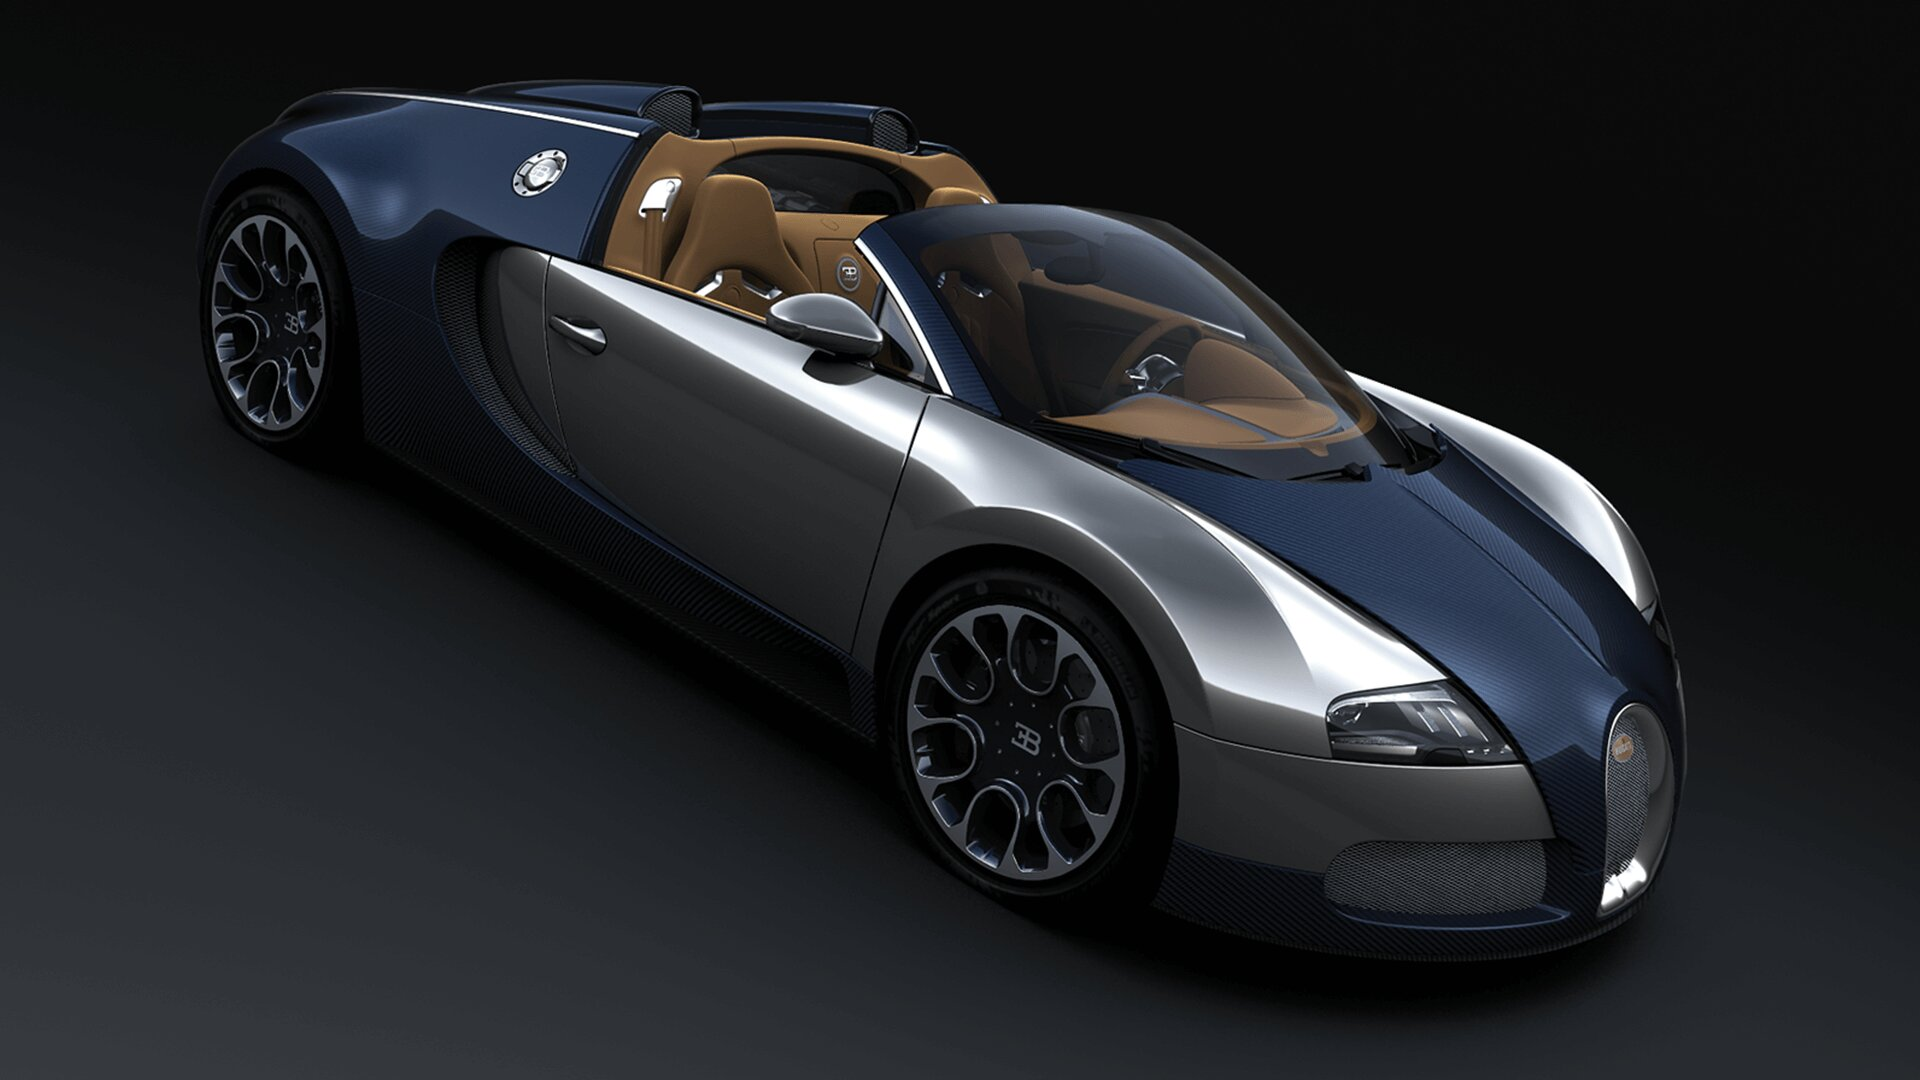 clientele news editions grand de unveils soleil sport three veyron east middel for only special diamond bugatti